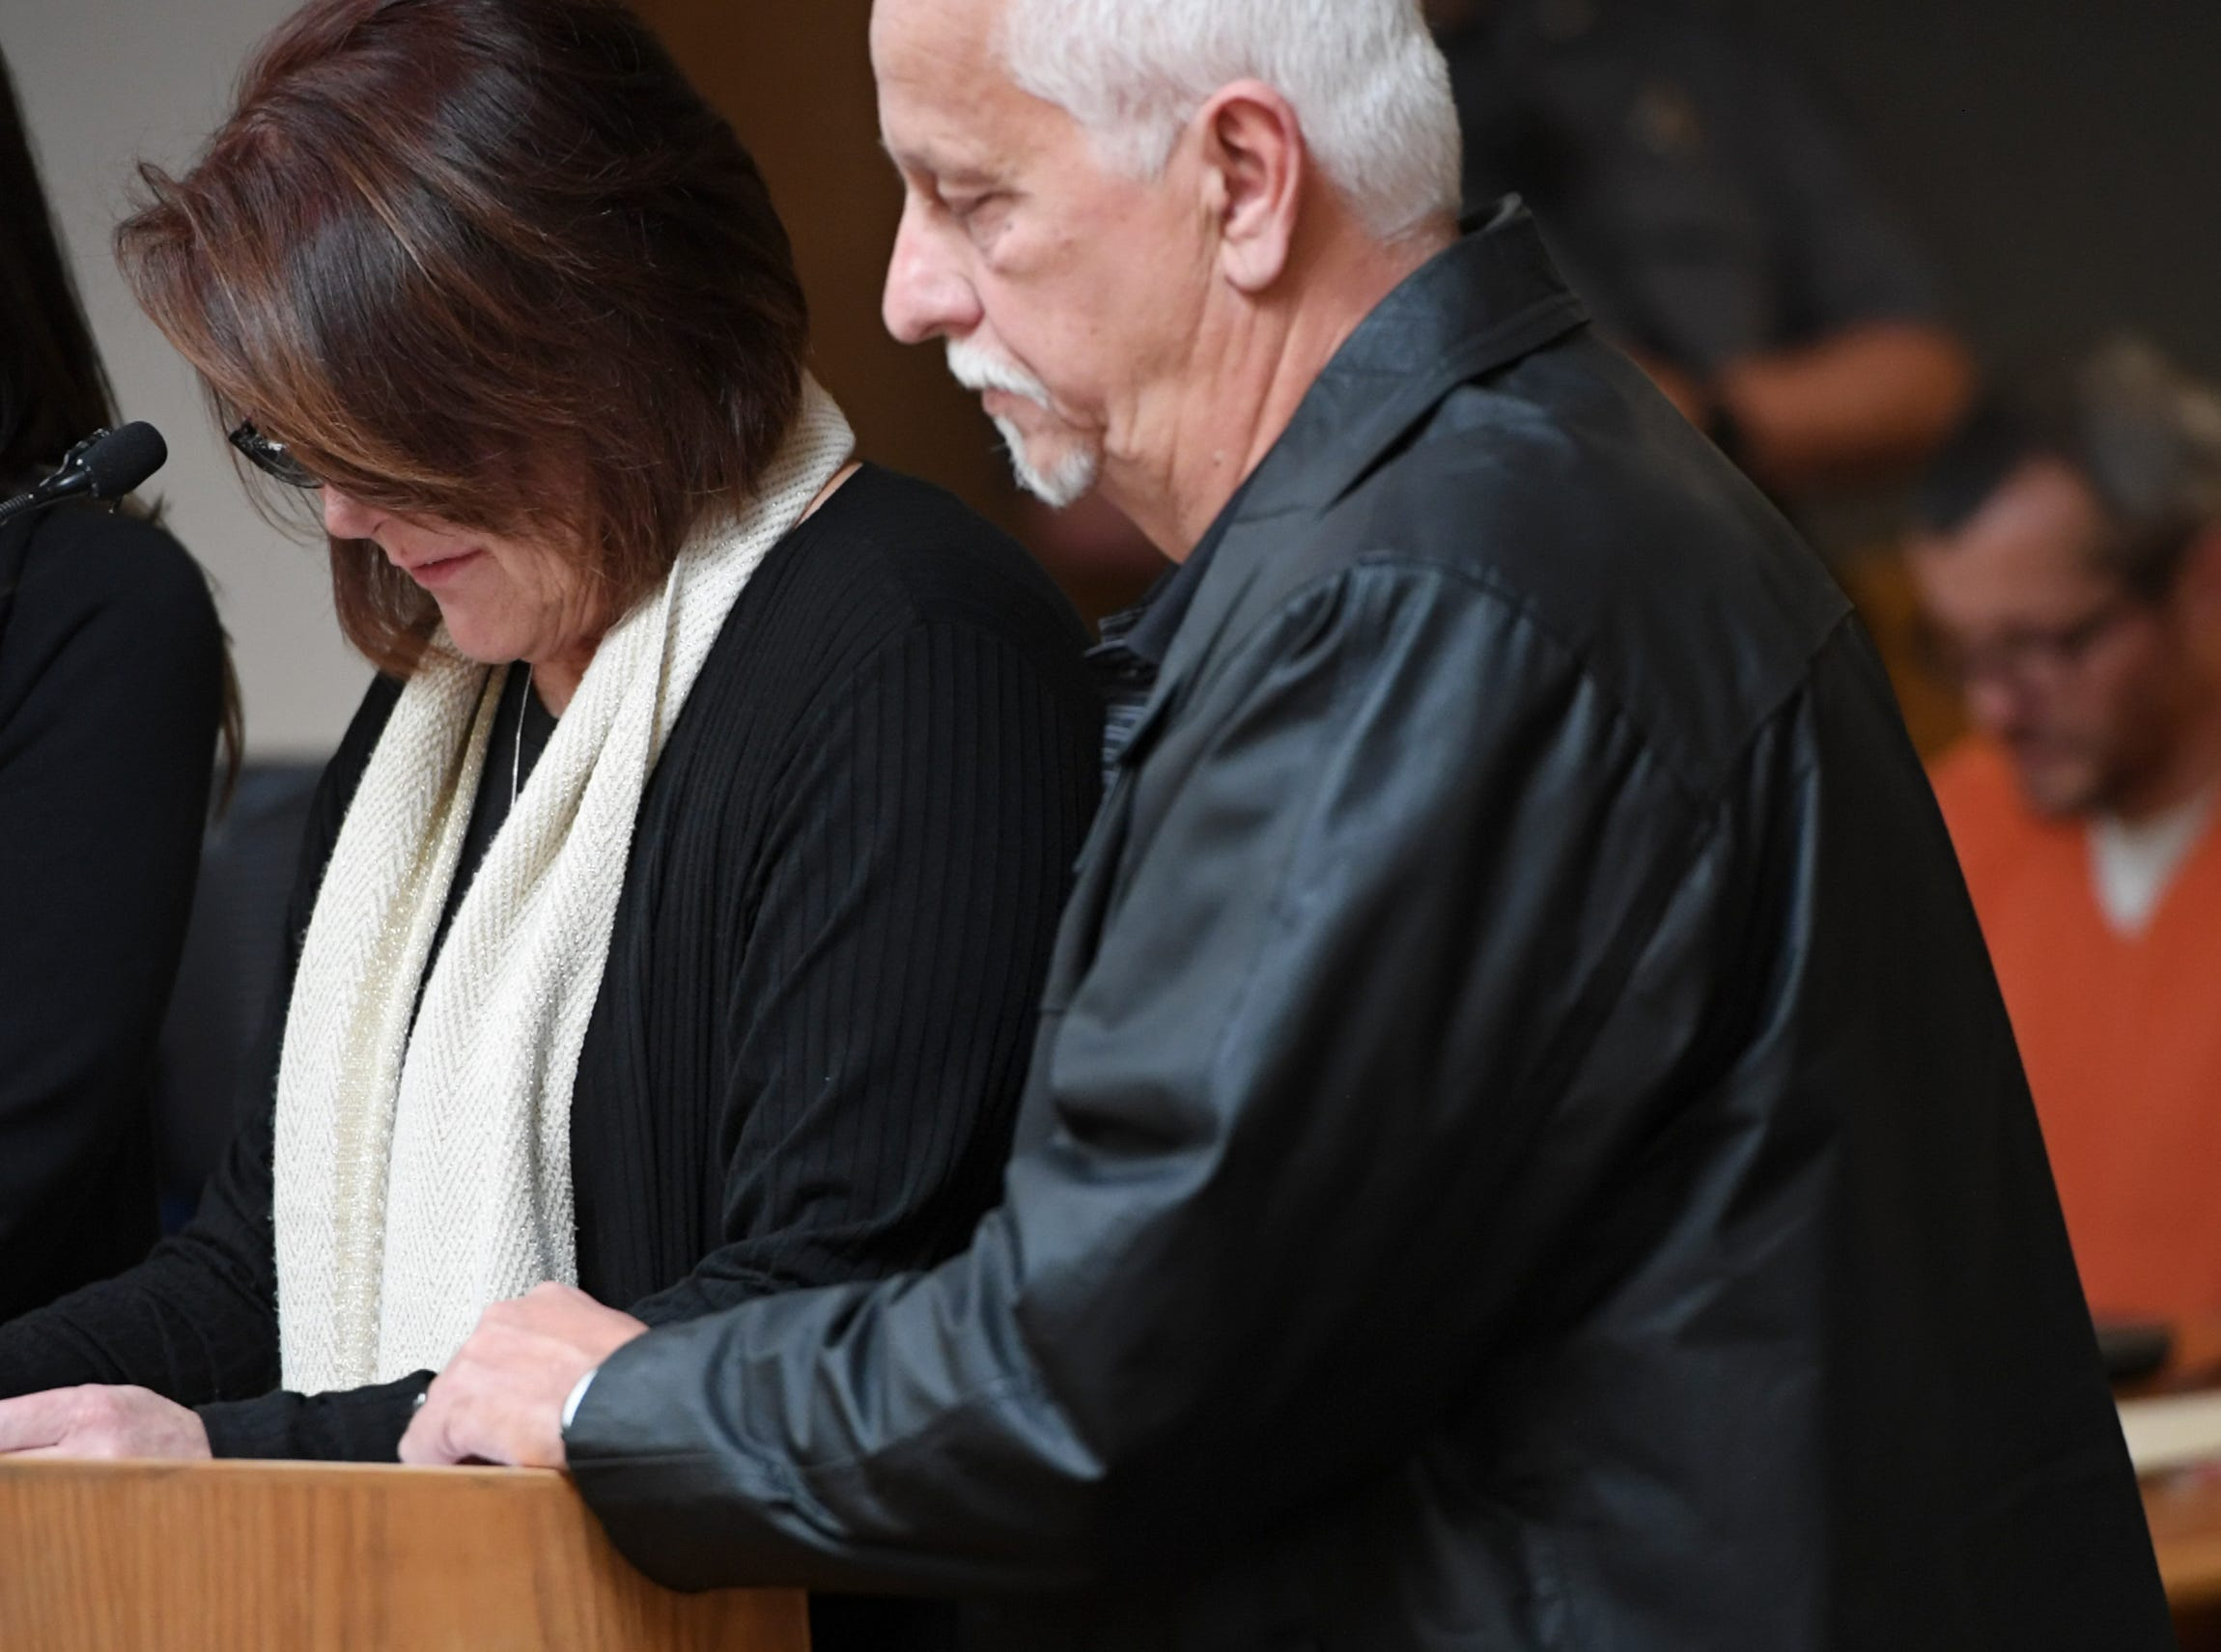 Ronnie and Cindy Watts address the court during their son's sentencing at the Weld County Courthouse on Monday, Nov. 19, 2018 in Greeley, Colo. Christopher Watts received three consecutive life sentences without a chance at parole on Monday, nearly two weeks after pleading guilty to avoid the death penalty. (RJ Sangosti/The Denver Post via AP, Pool)